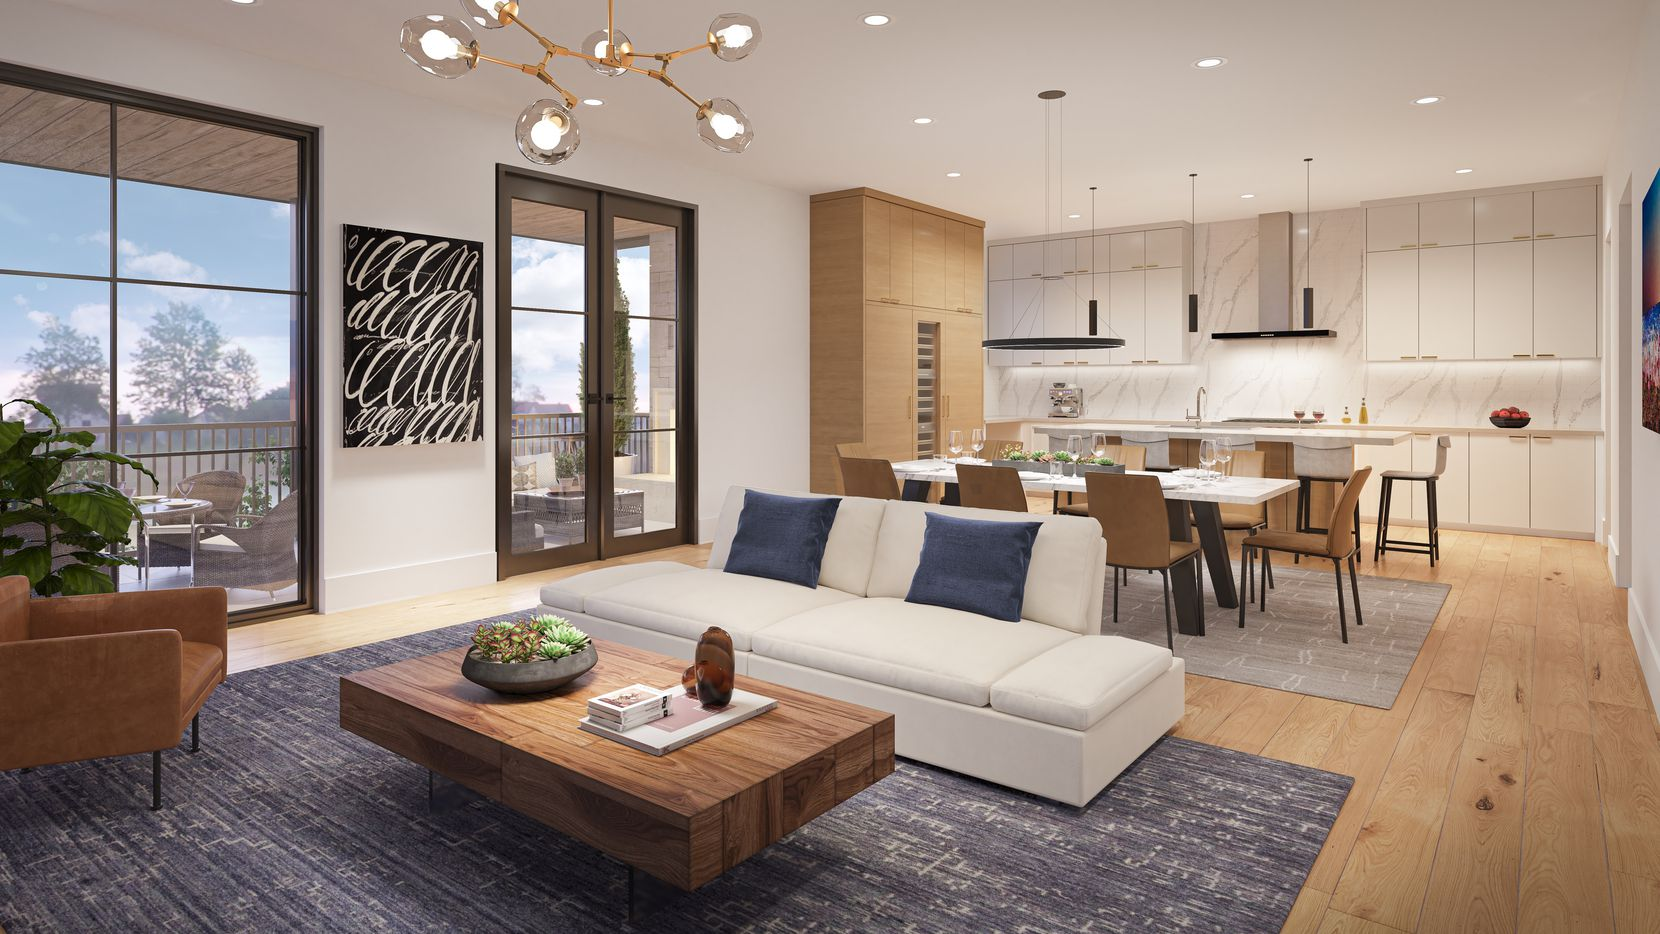 The City Homes condos will range from 2,199 to 2,629 square feet.